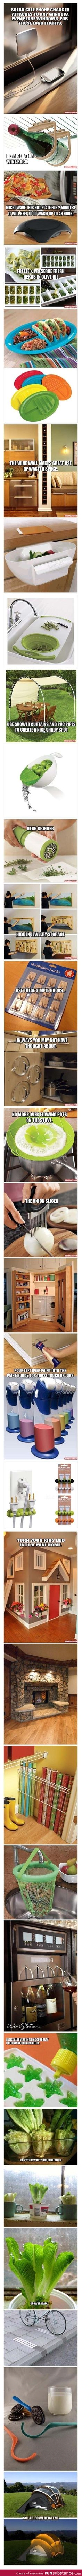 Amazing ideas of awesome. Fridge wine rack?!?